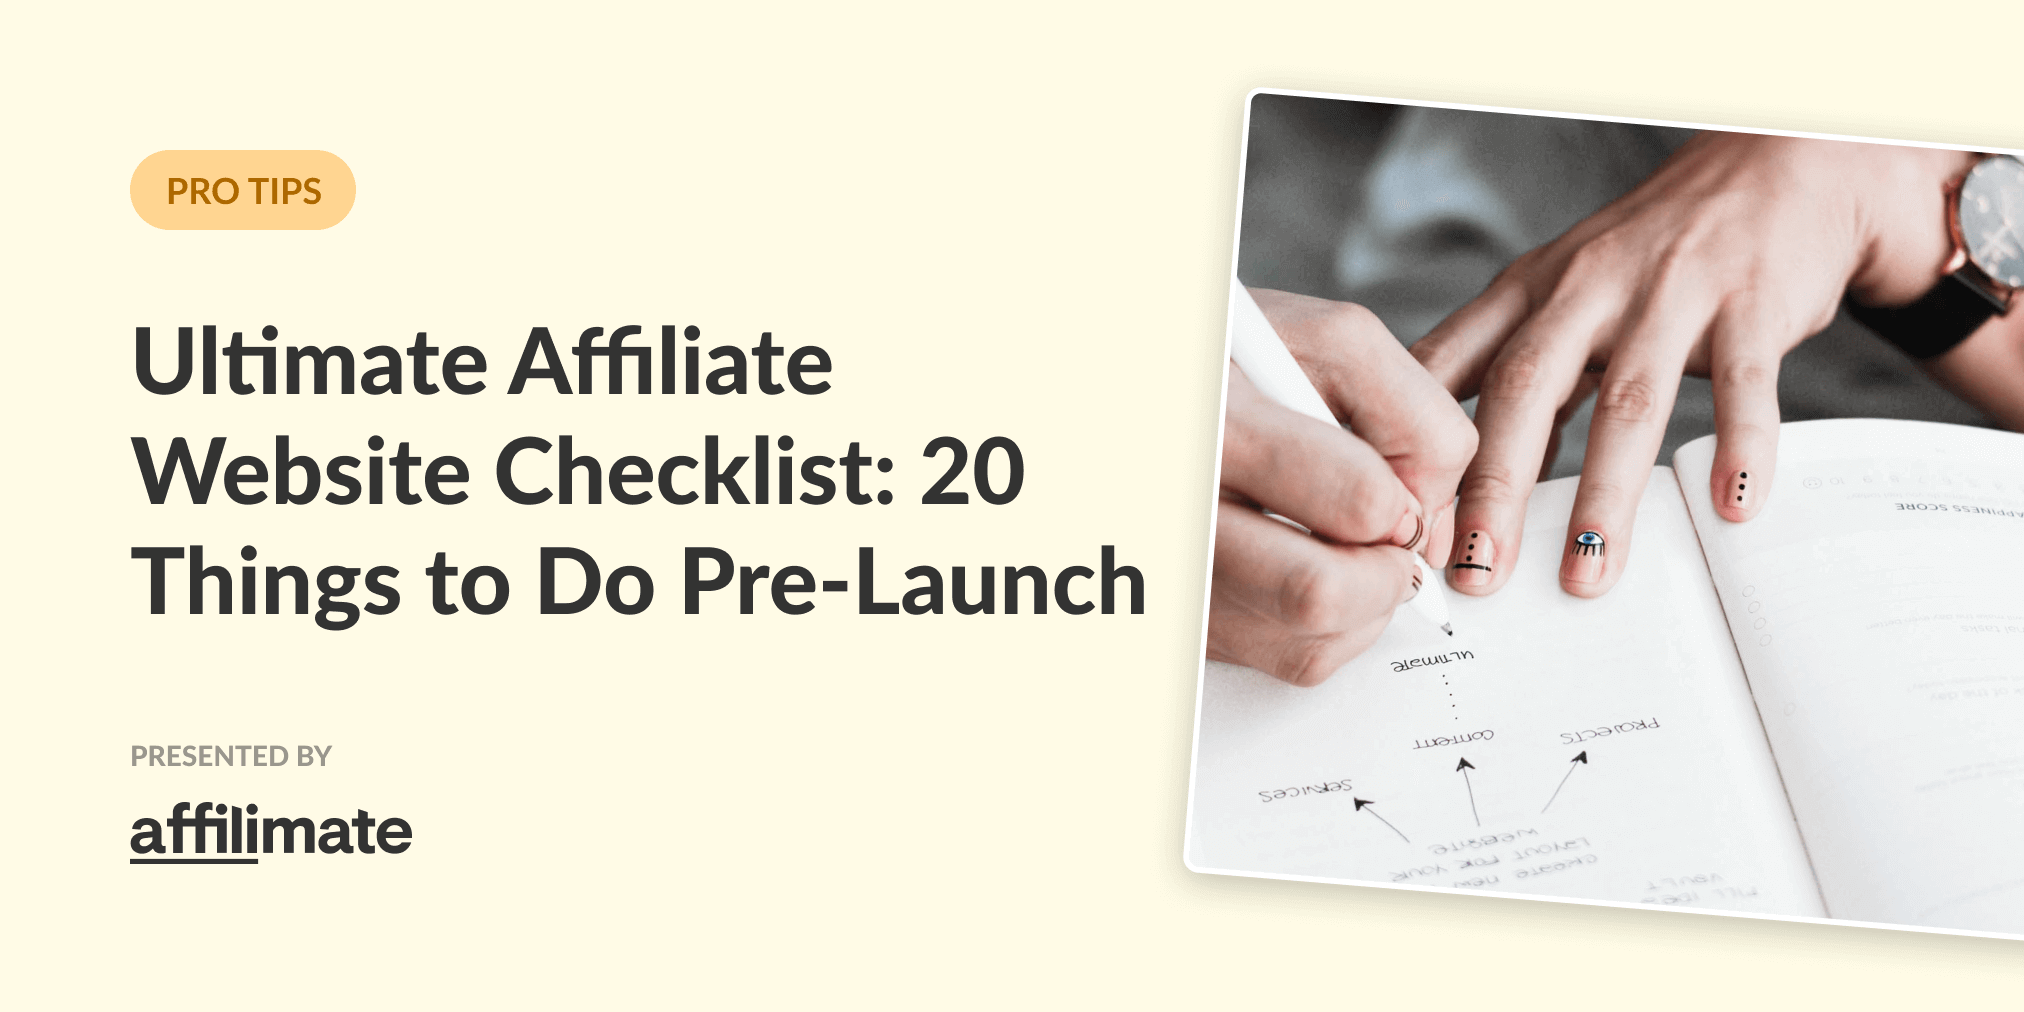 The Ultimate Affiliate Website Checklist: 20 Things to do Before You Launch